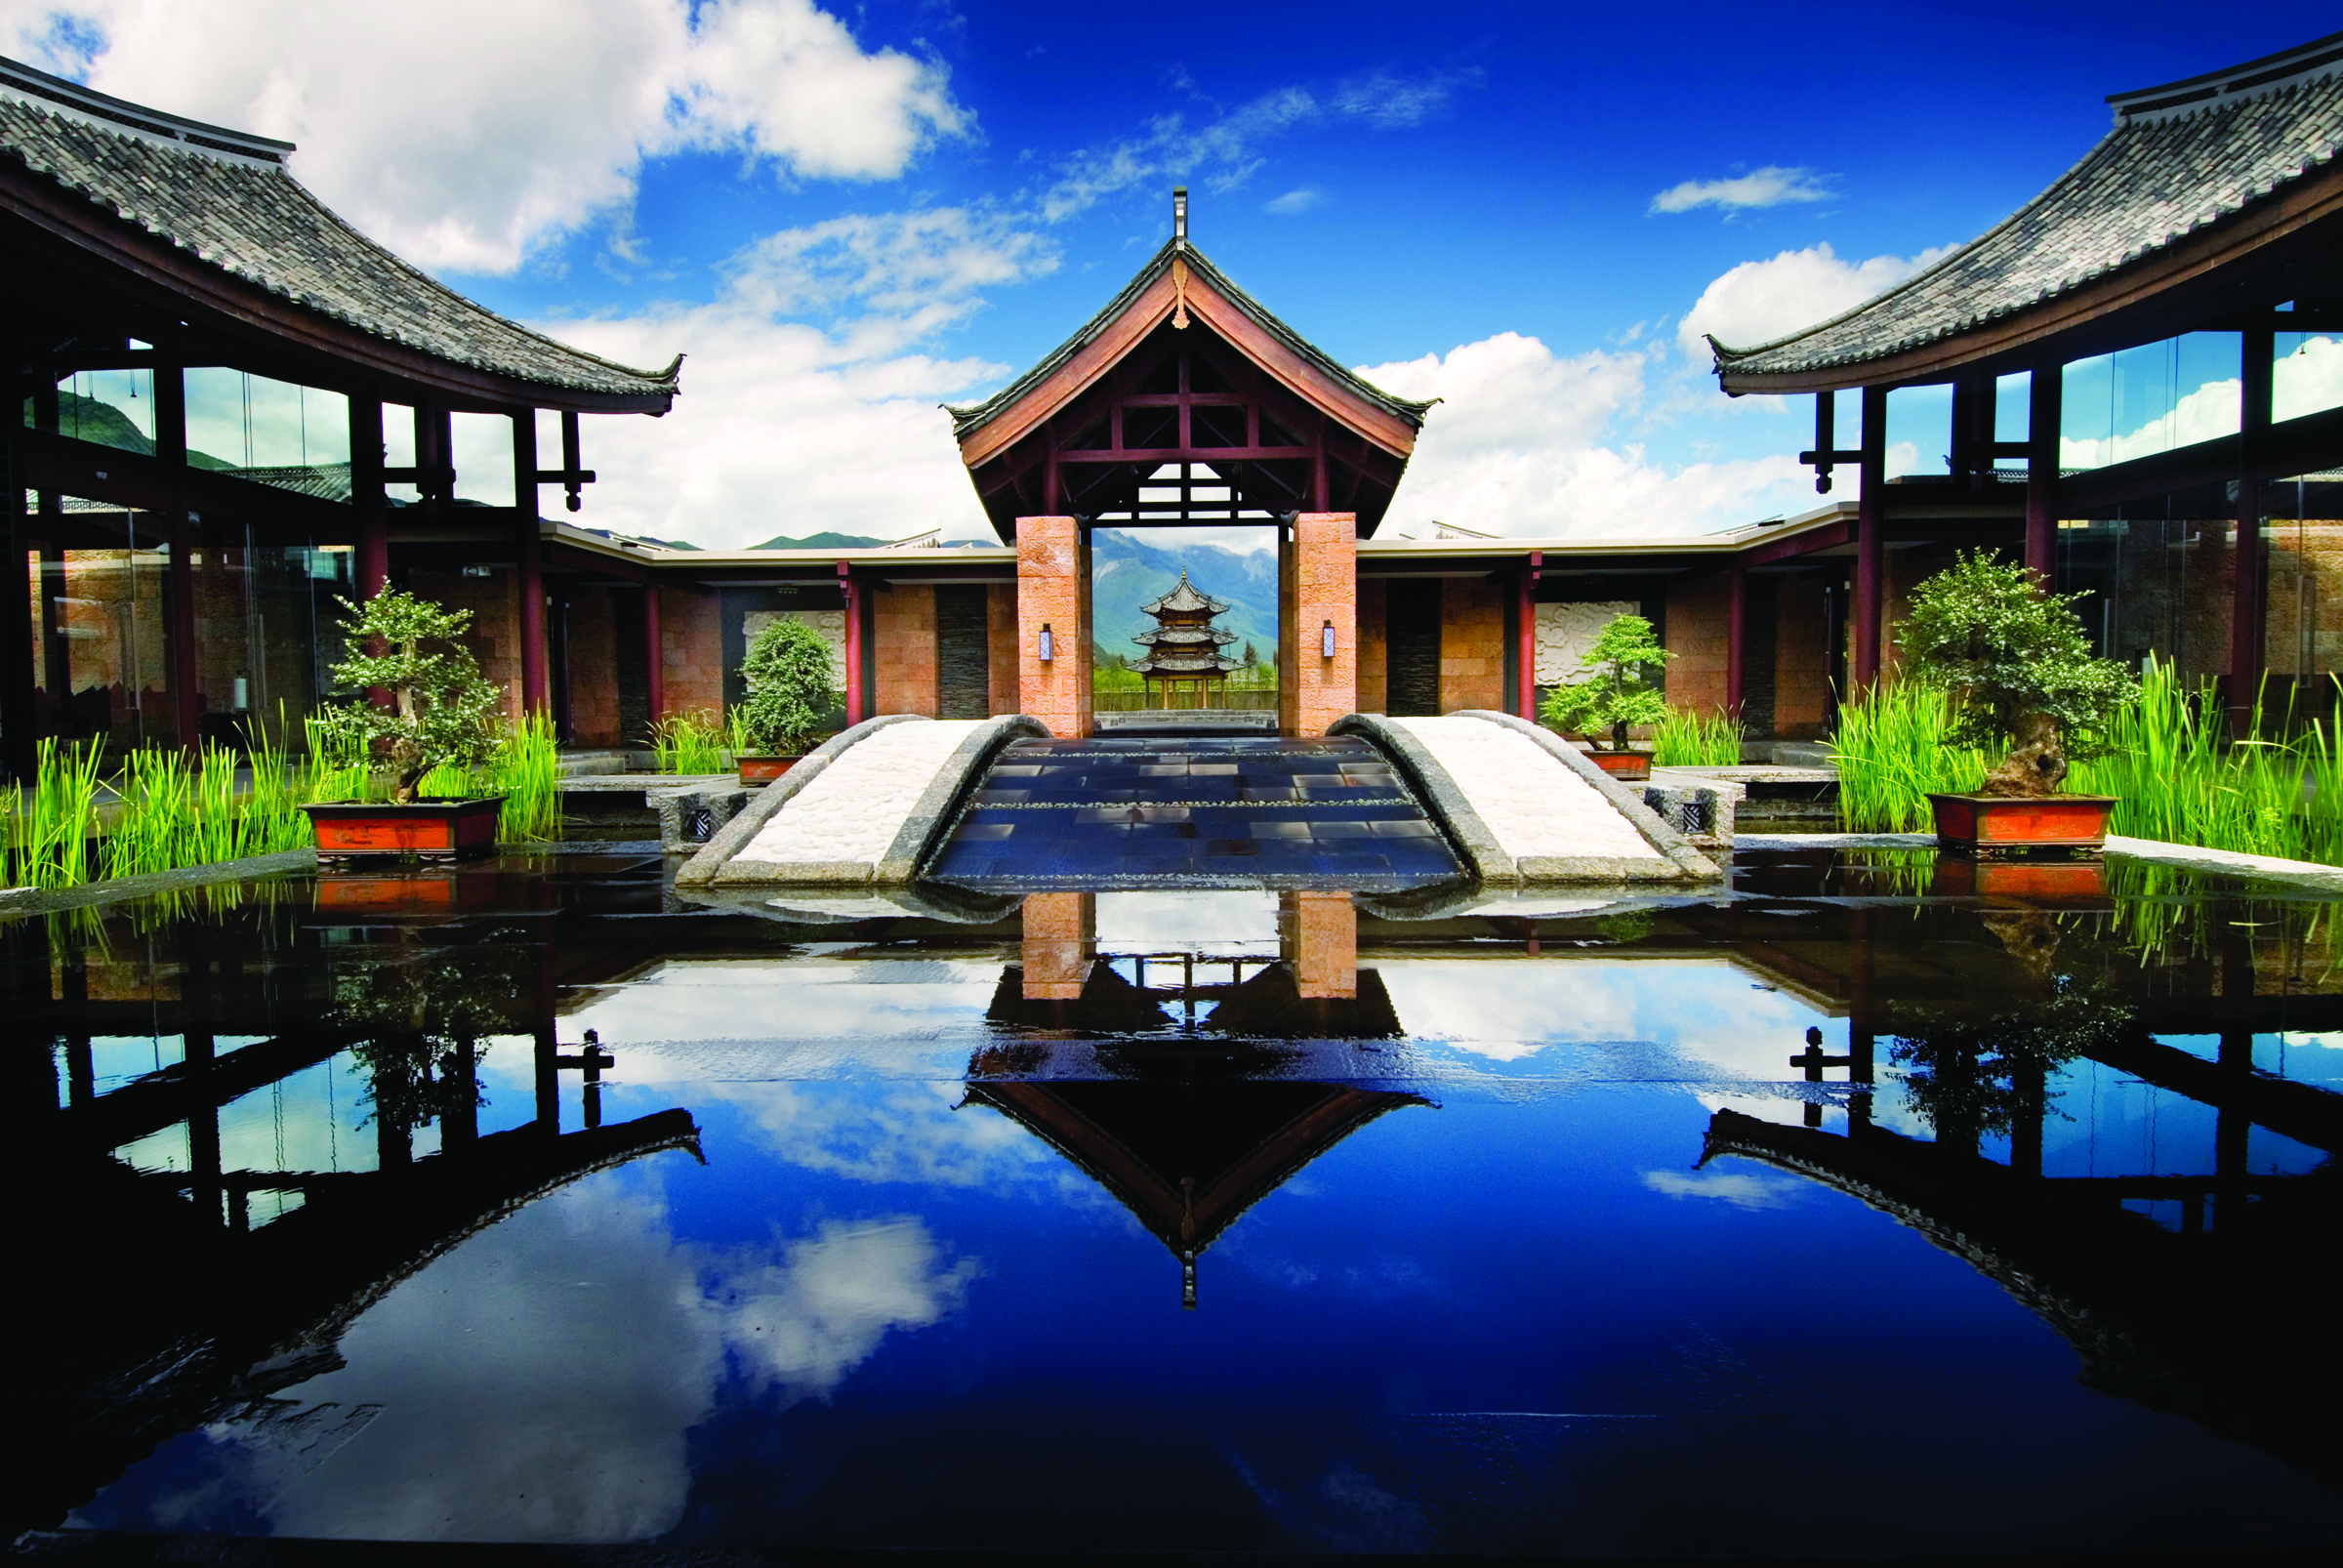 STAY: BANYAN TREE LIJIANG